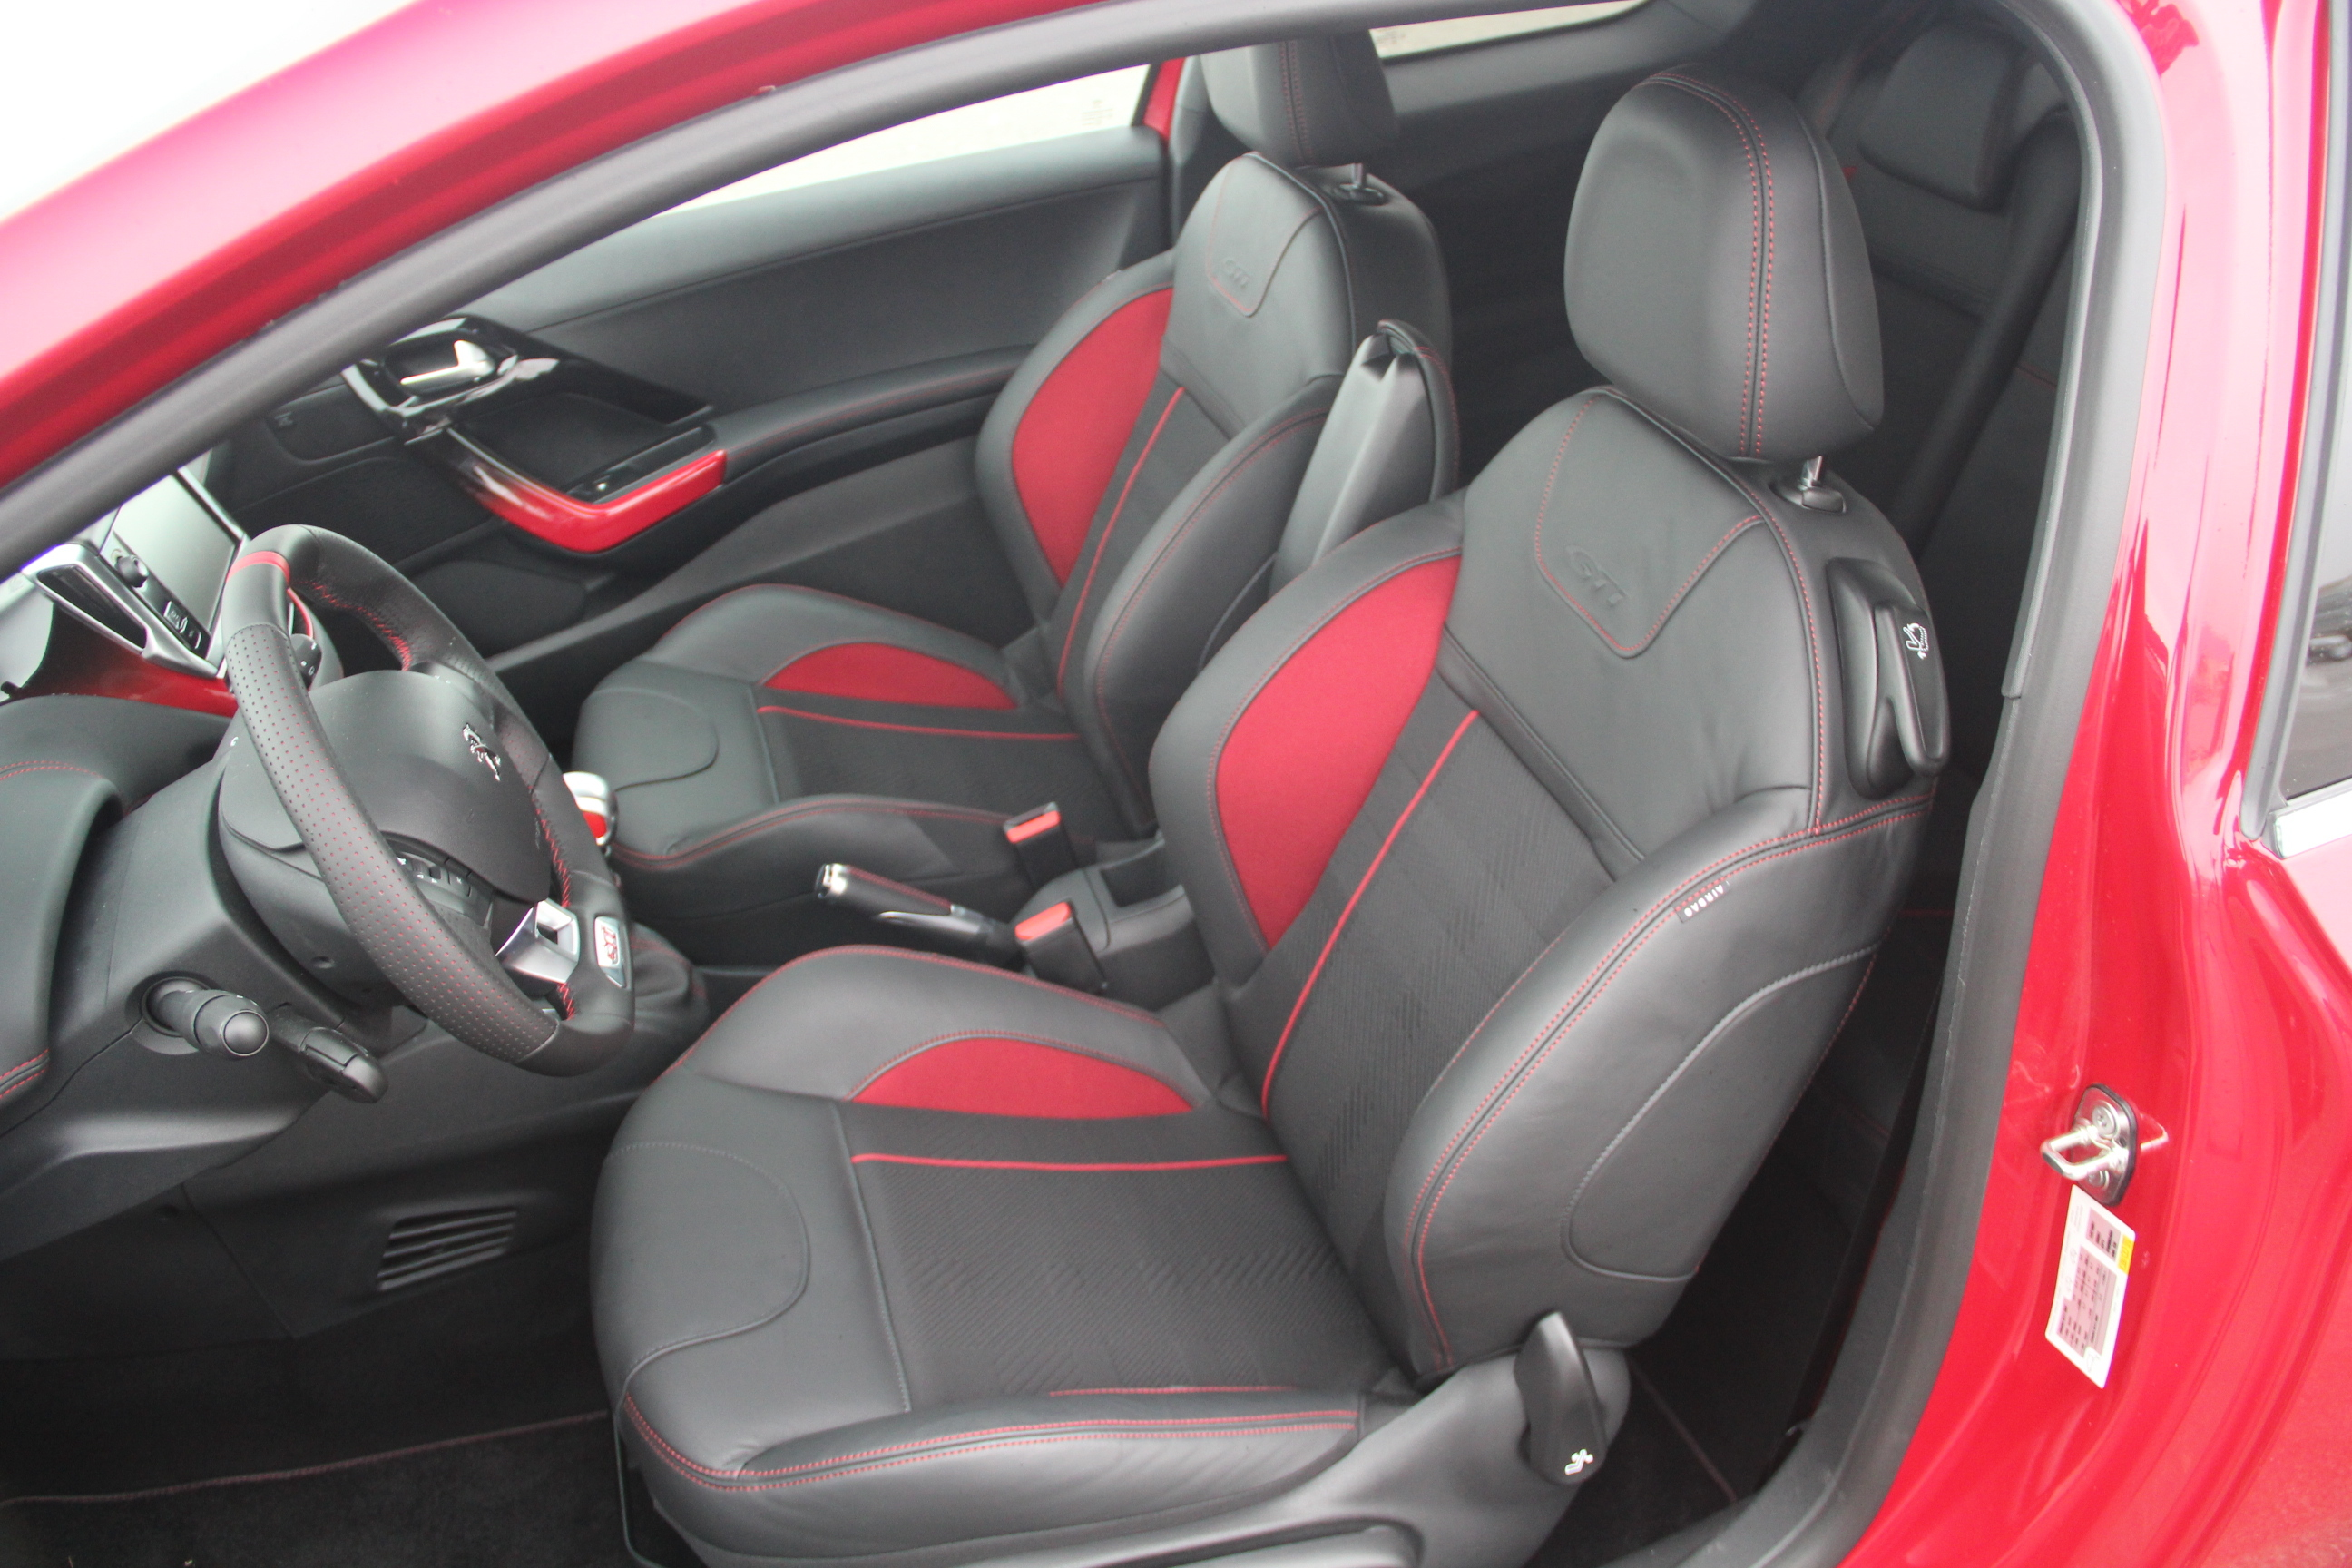 essai vid o peugeot 208 gti elle a bouff du lion. Black Bedroom Furniture Sets. Home Design Ideas